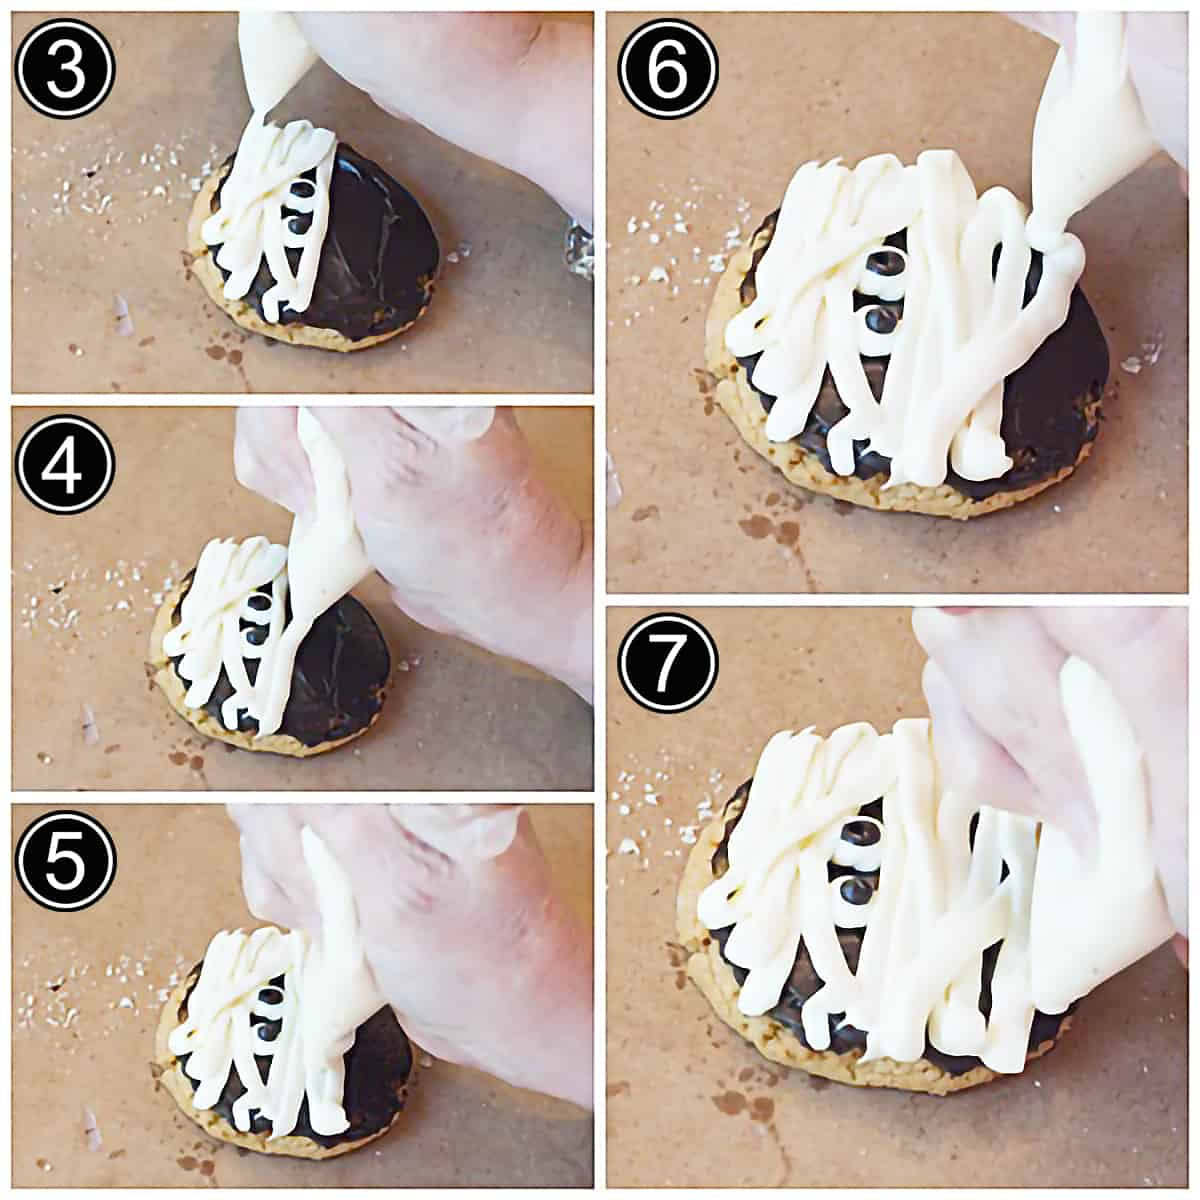 Photo collage showing steps 3-7 of piping the mummy's wrappings onto the mummy cookies.